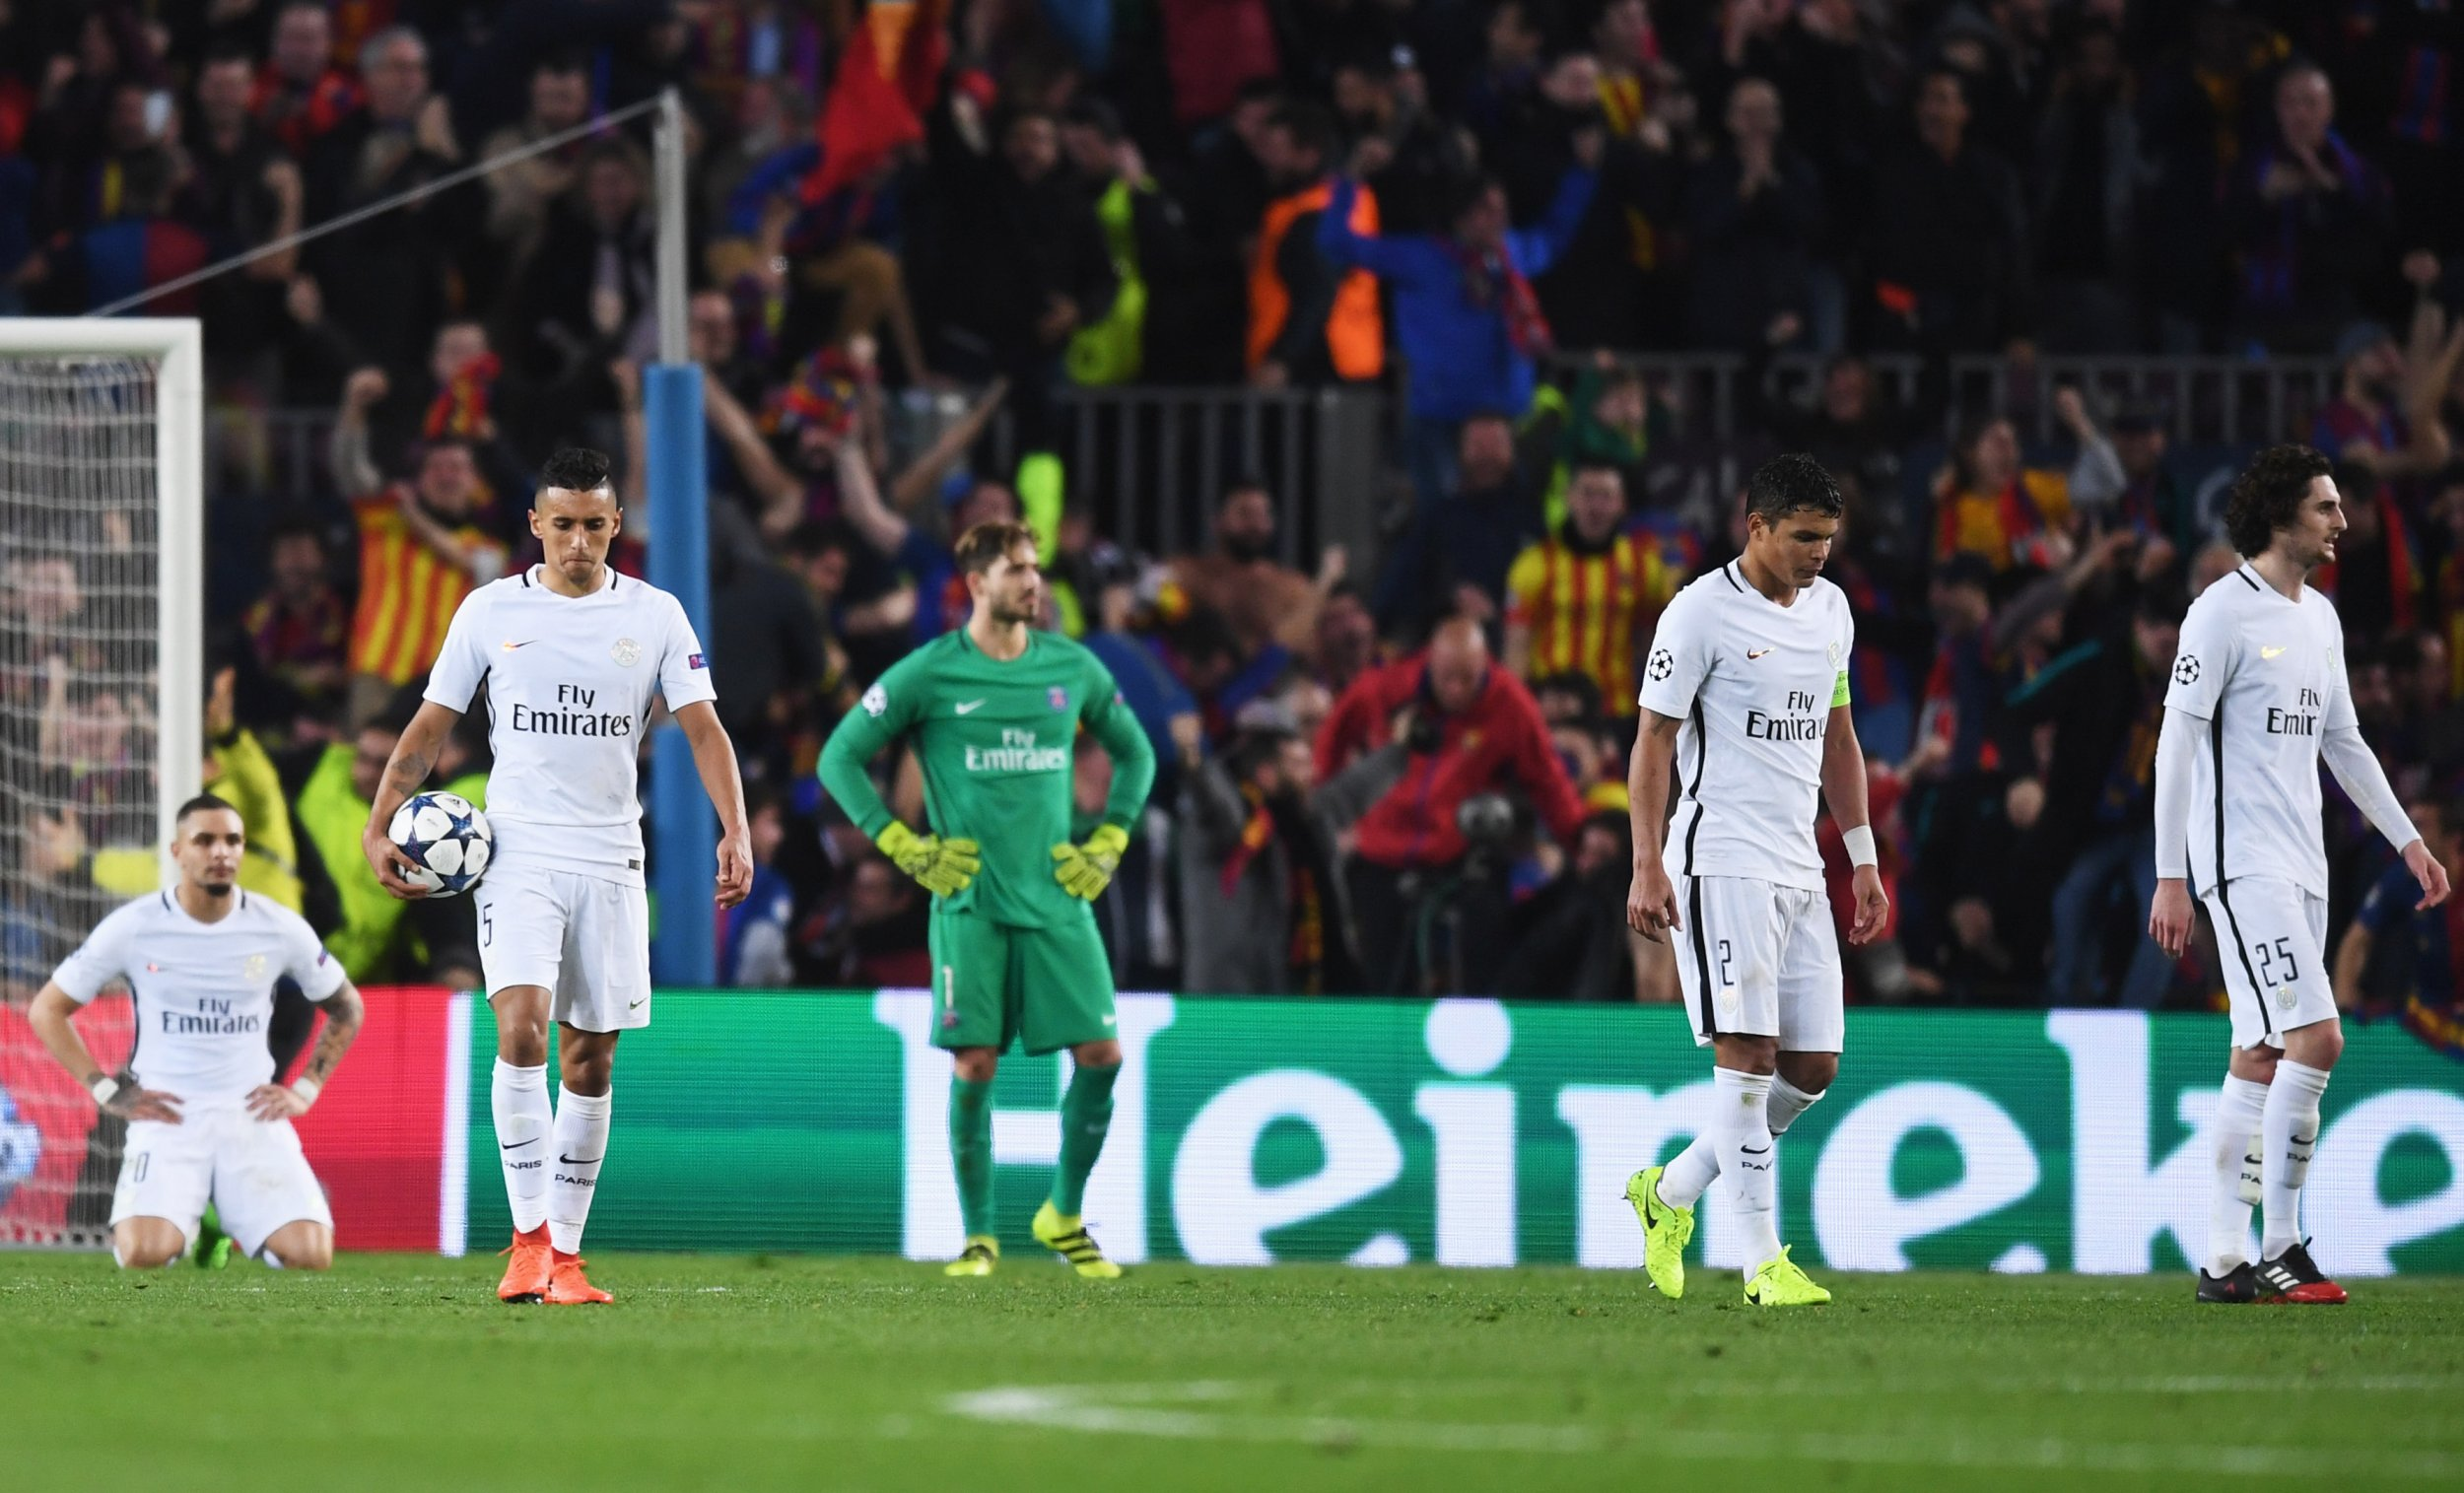 PSG players react to their Barcelona defeat at Camp Nou